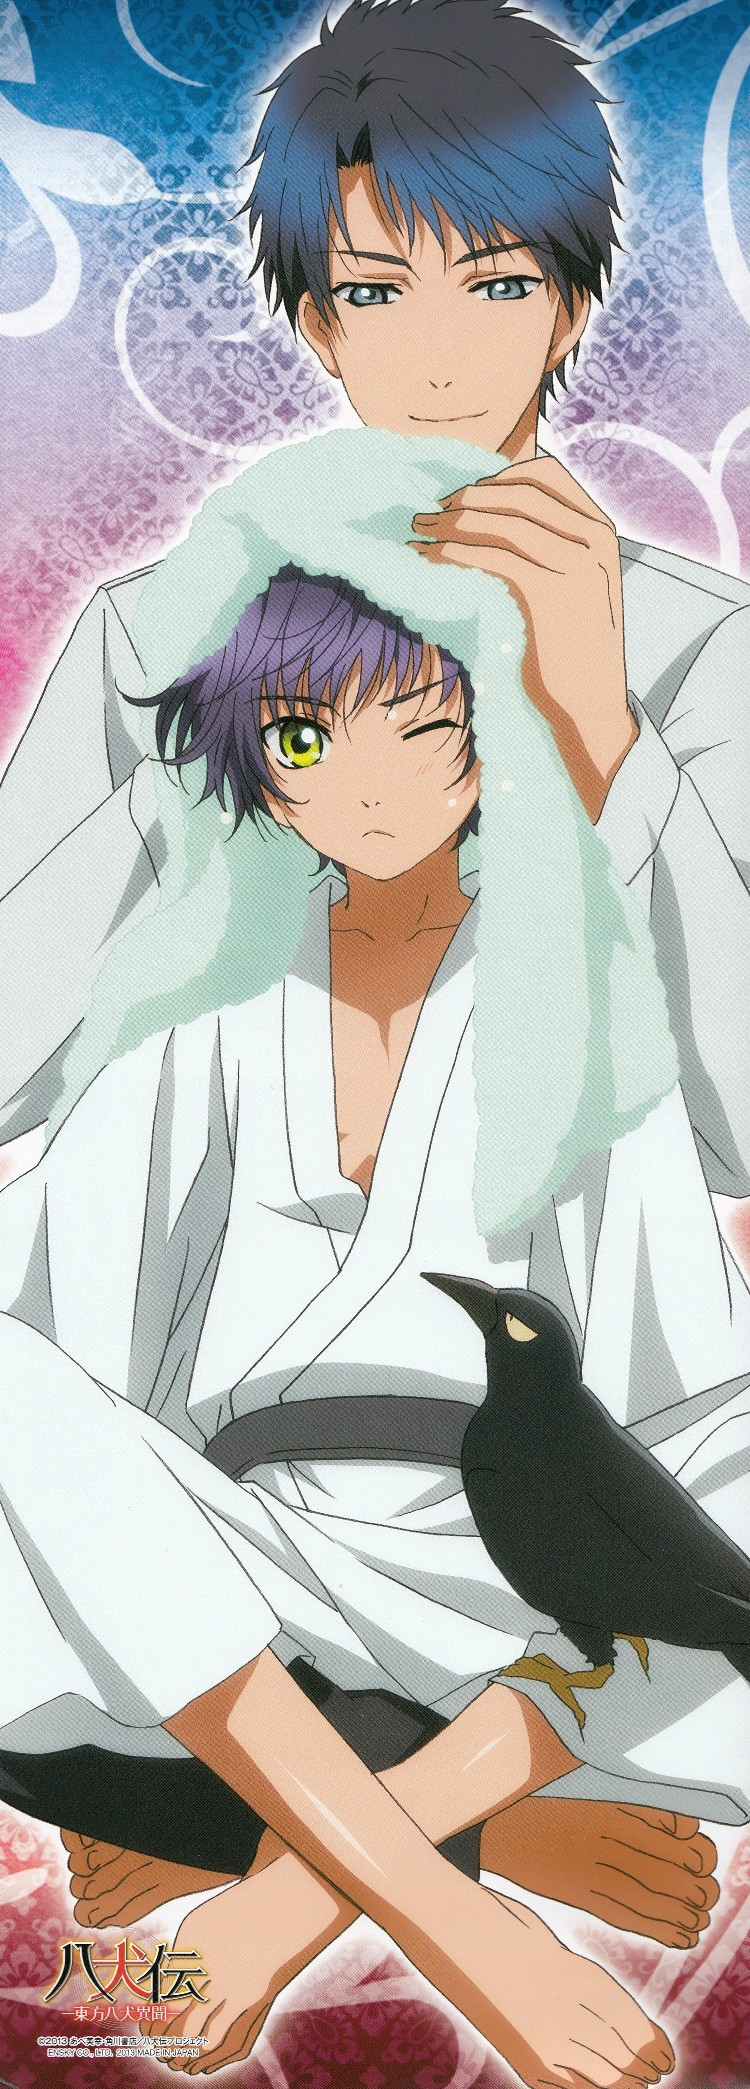 dgdg875_anime_wallpaper_hakkenden-23954.jpg